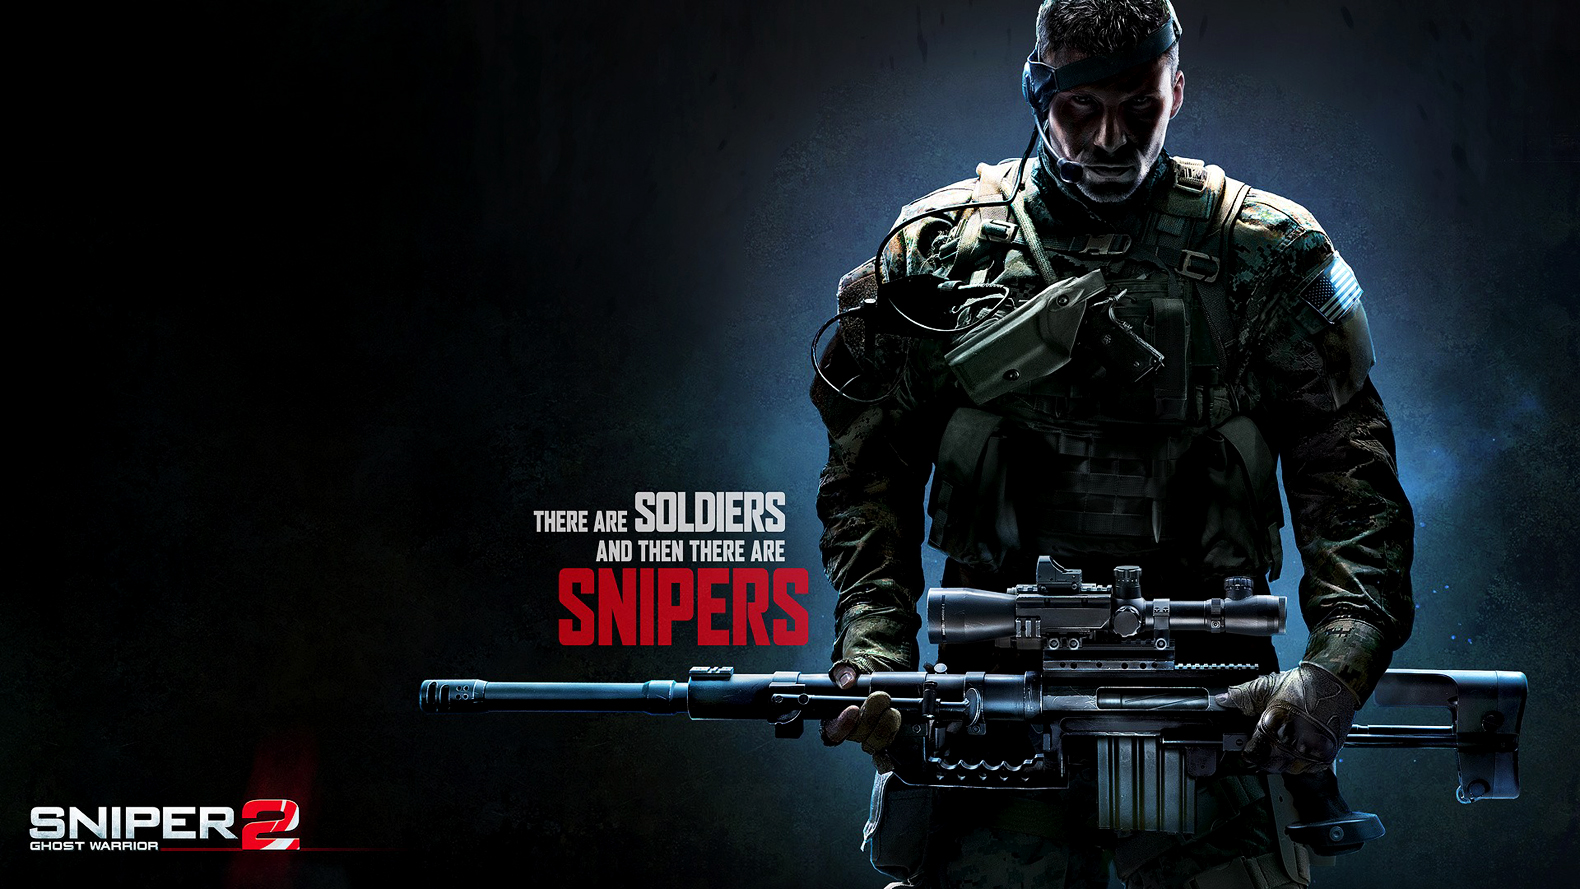 15 Best Sniper Wallpapers from Video Games Download Wallpapers in 1580x889